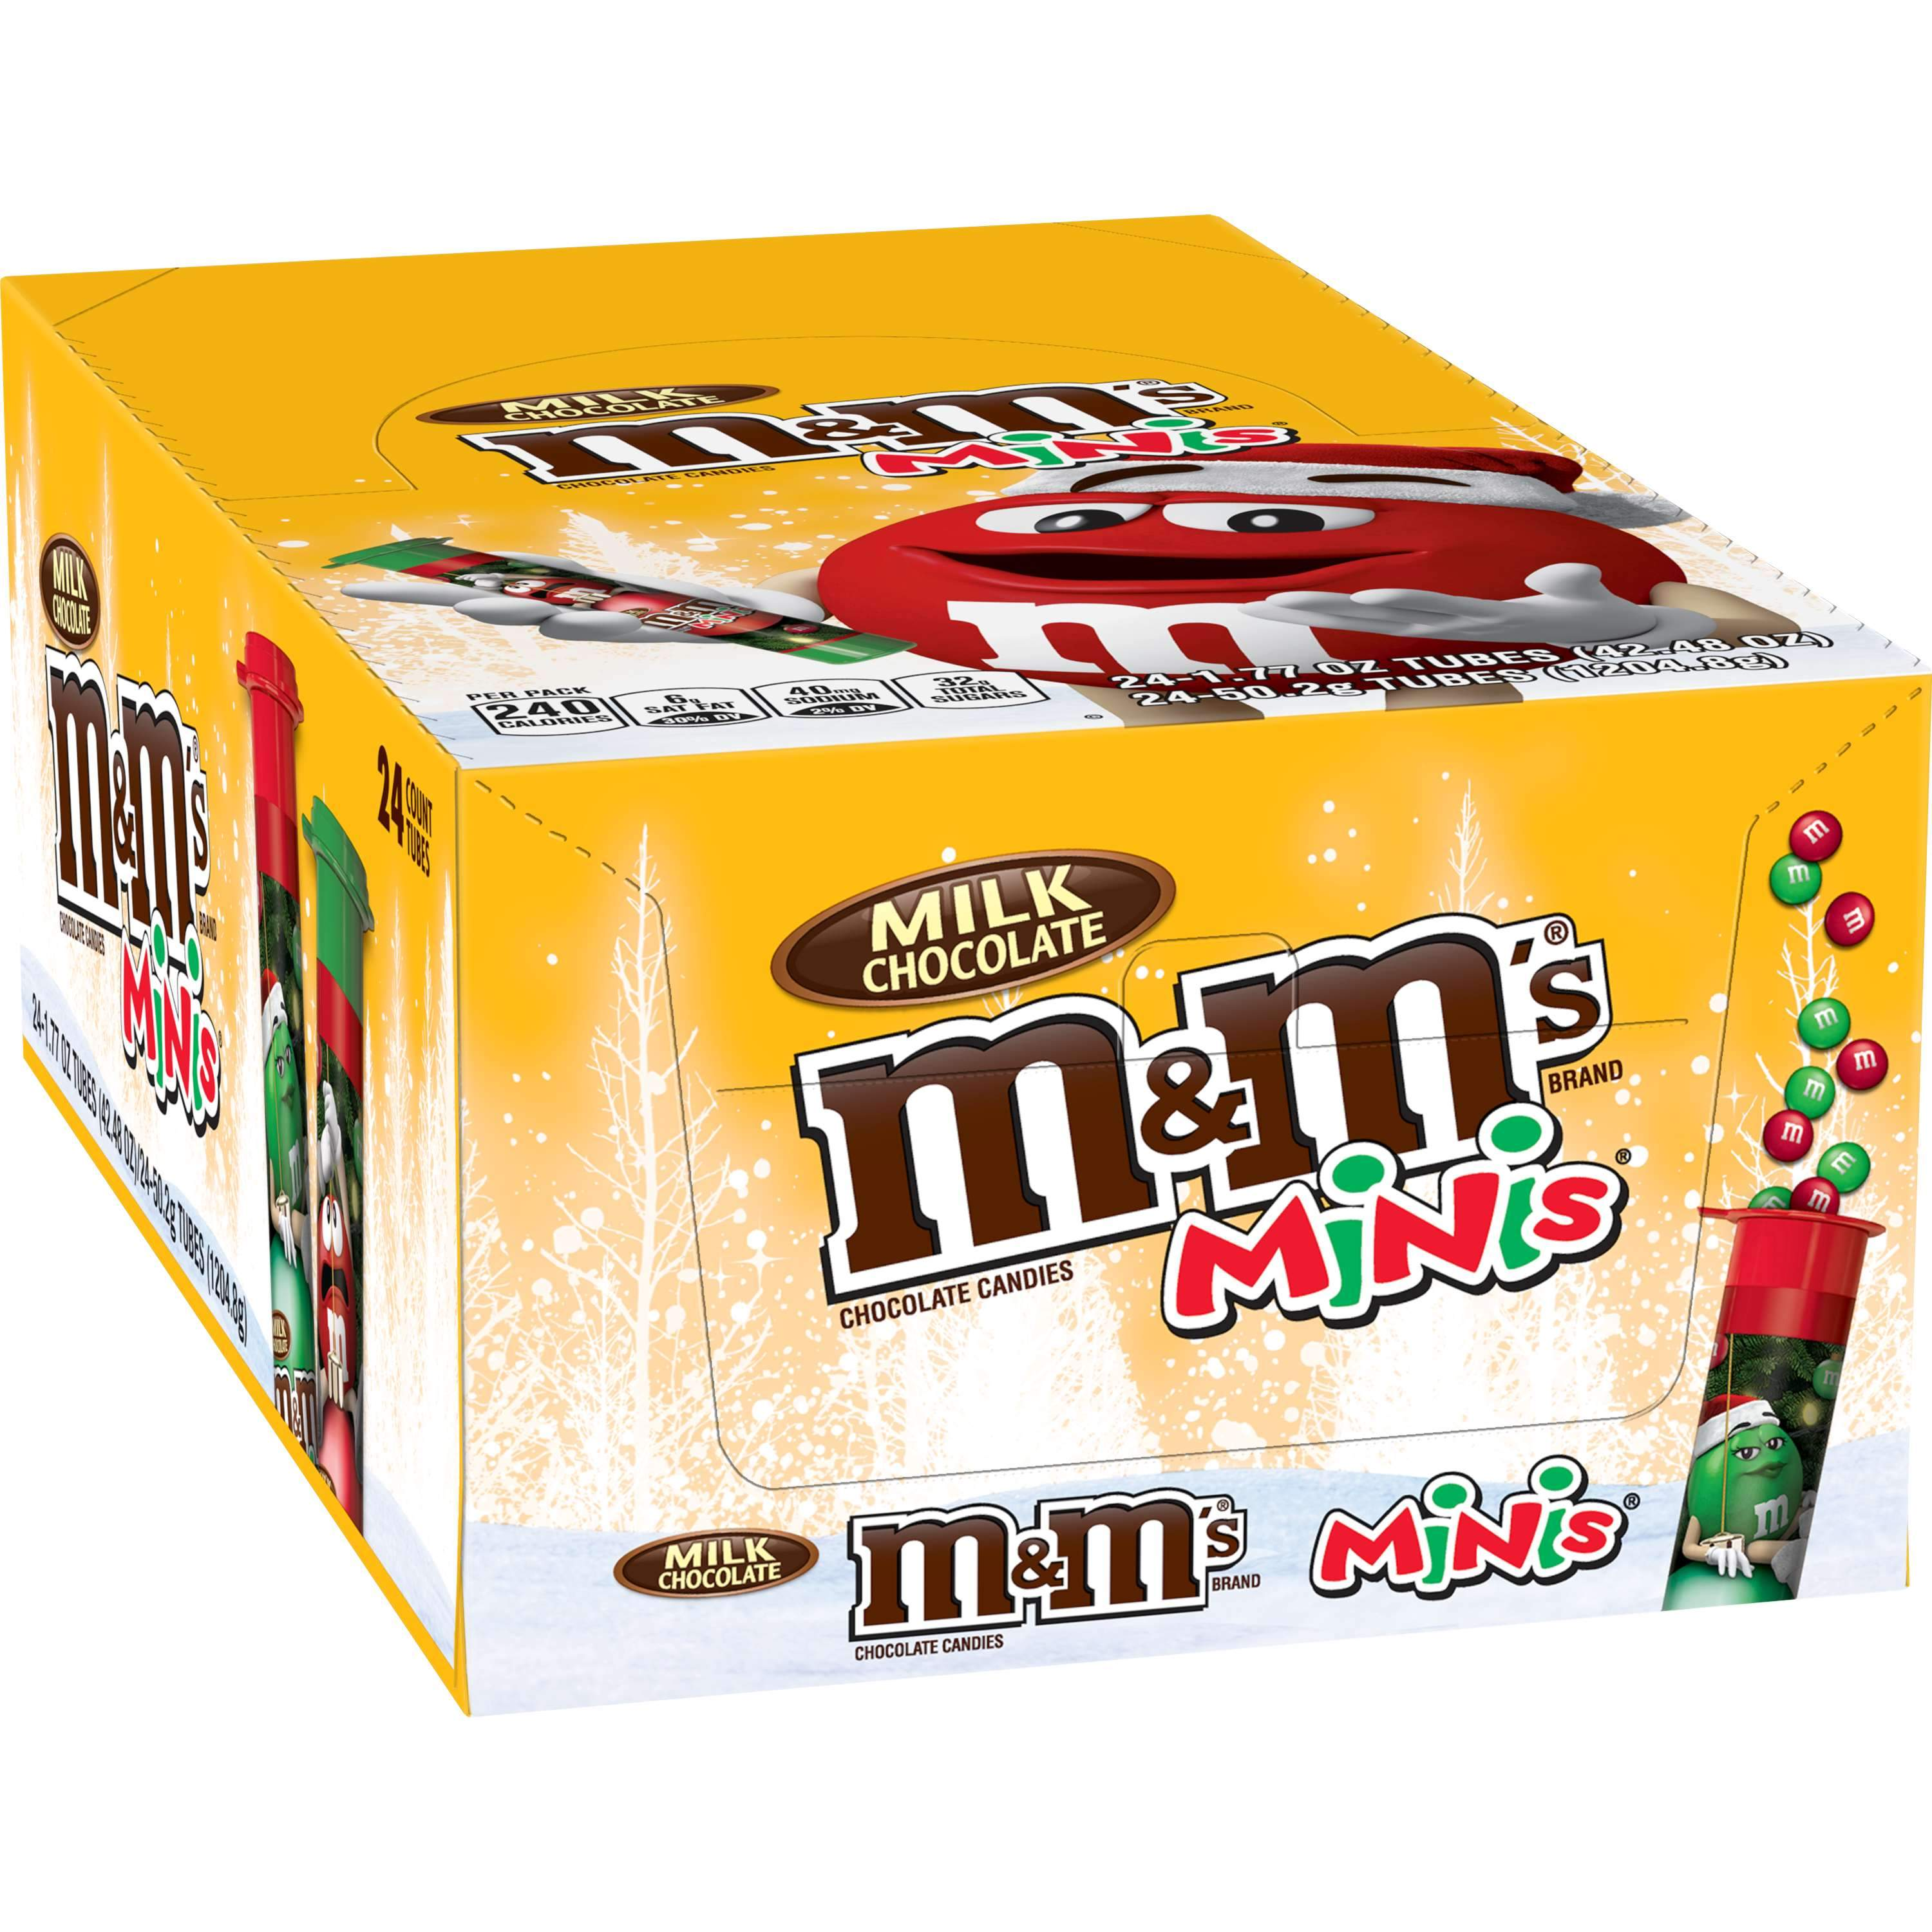 M&M's Chocolate Candies Meltable M&M's